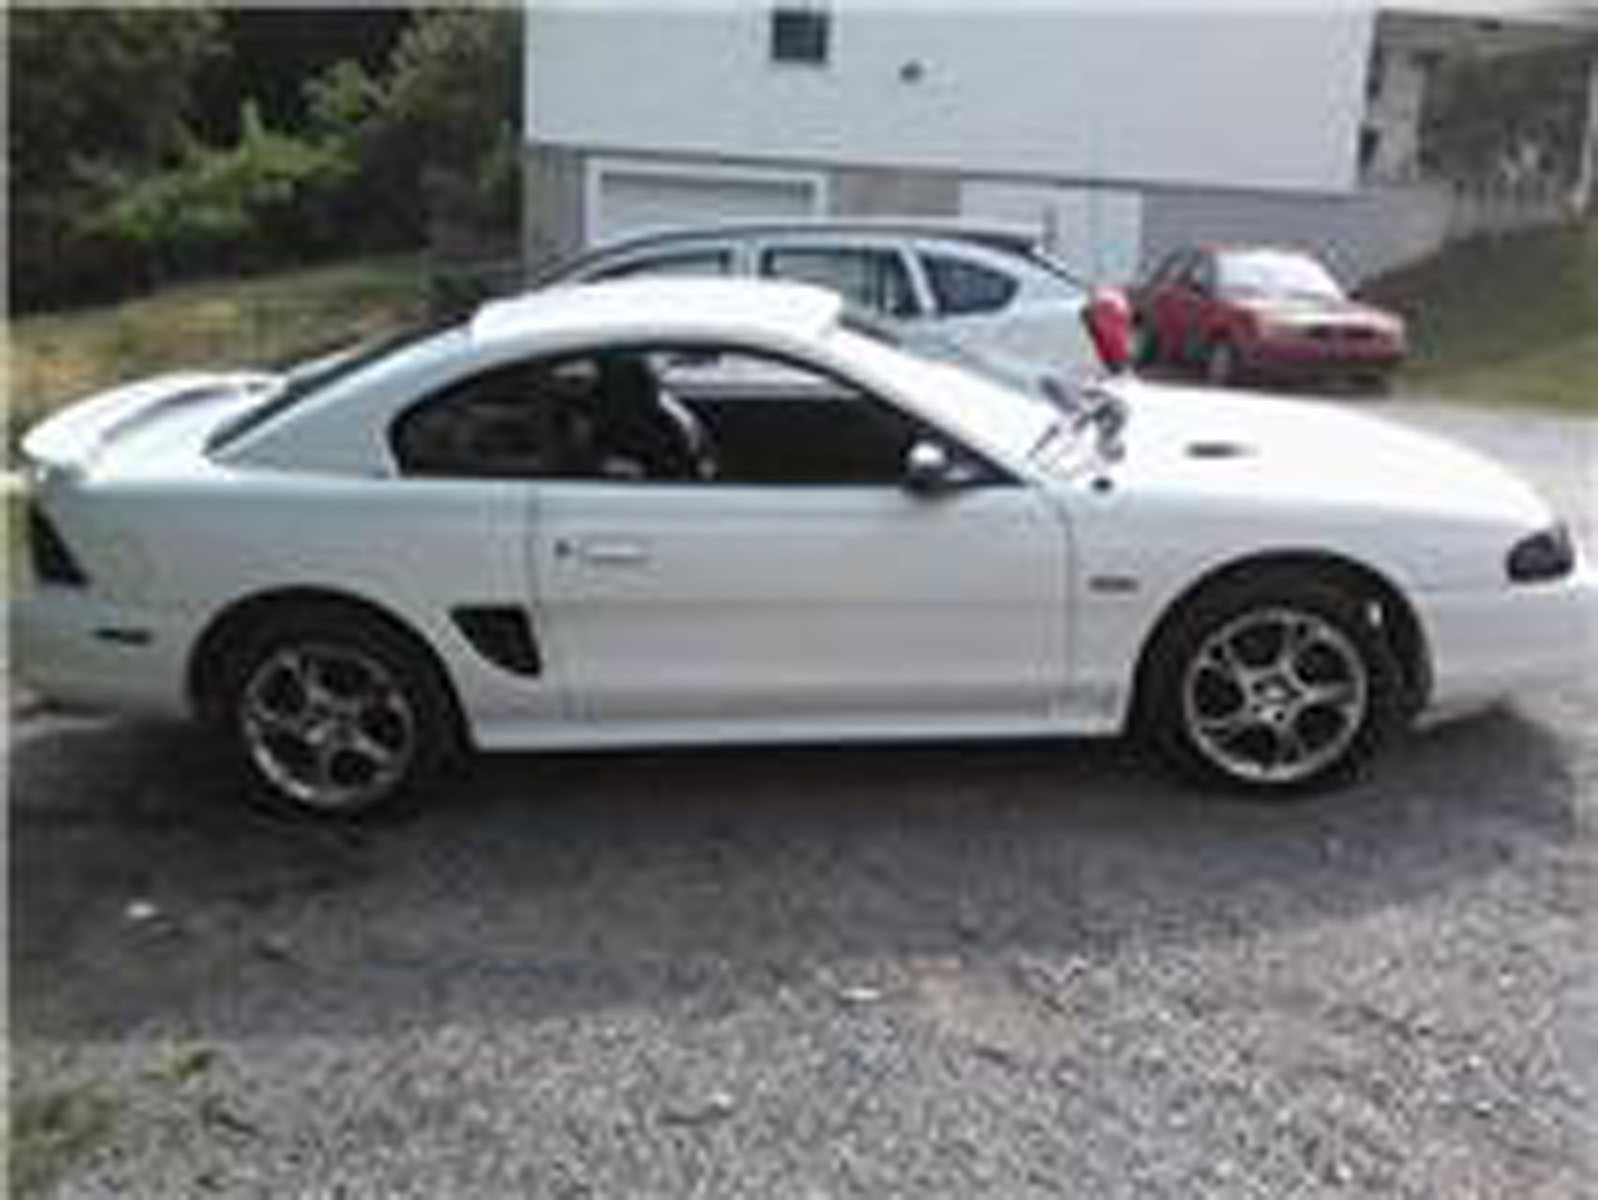 All Types 1996 mustang : 1996 Ford Mustang GT For Sale | strawberry plains Tennessee